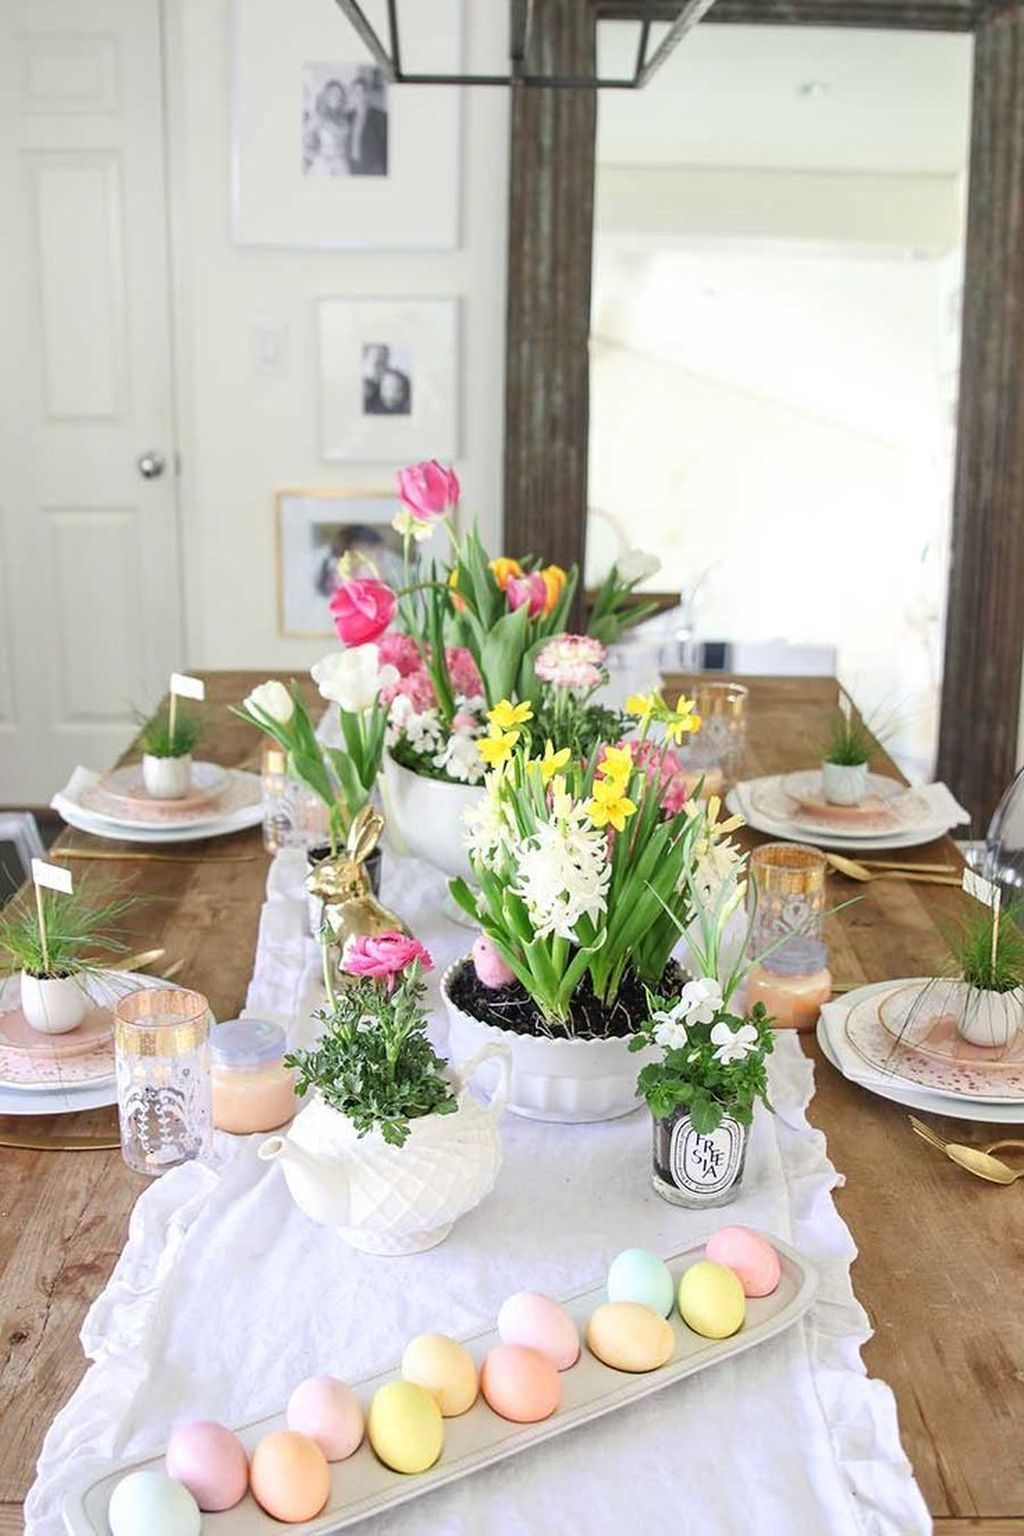 50 Amazing Bright And Colorful Easter Table Decoration Ideas Homyhomee Easter Table Decorations Easter Table Settings Colorful Easter Table